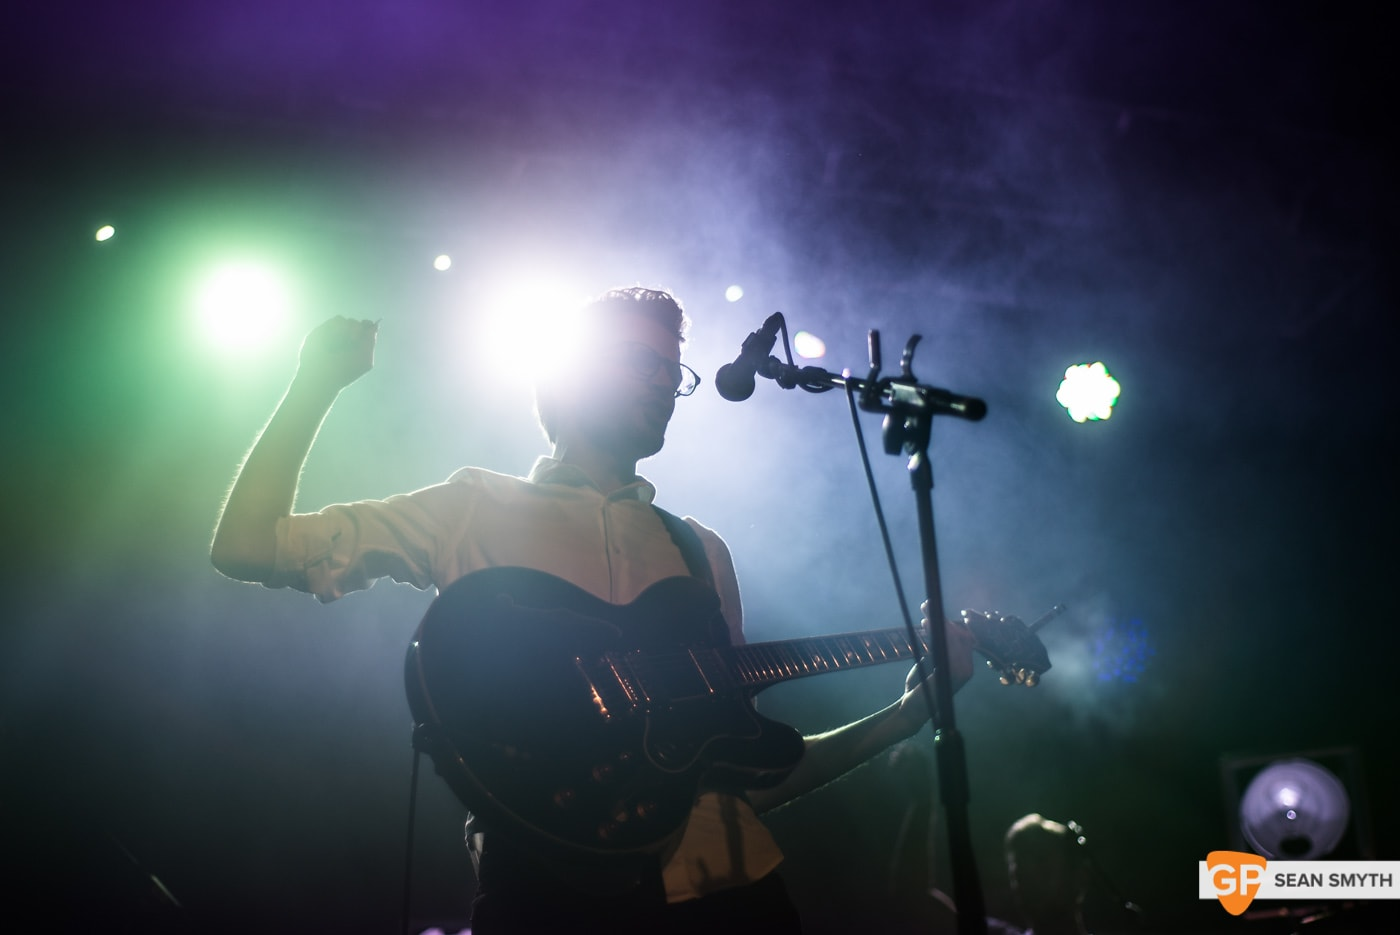 hudson-taylor-at-the-olympia-theatre-26-2-15-by-sean-smyth-6-of-26_16549499047_o